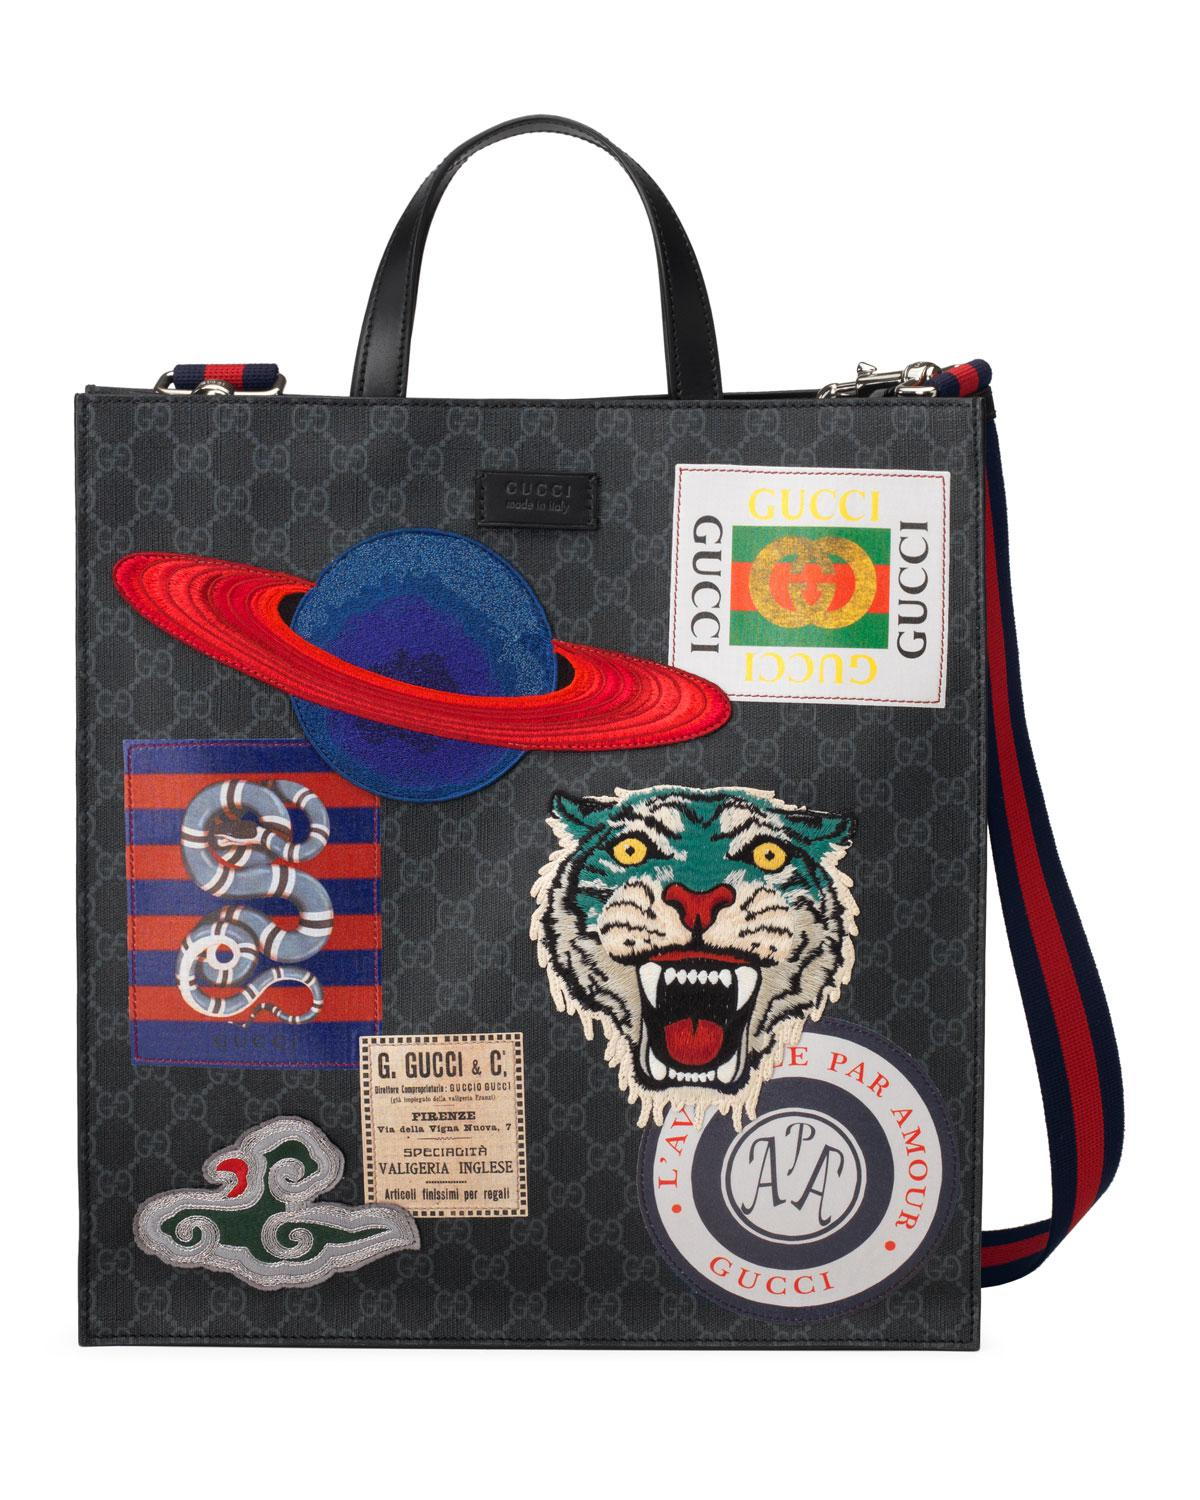 d927f937e51ccd Gucci - Black Men's GG Supreme Tote Bag With Patches - Lyst. View fullscreen